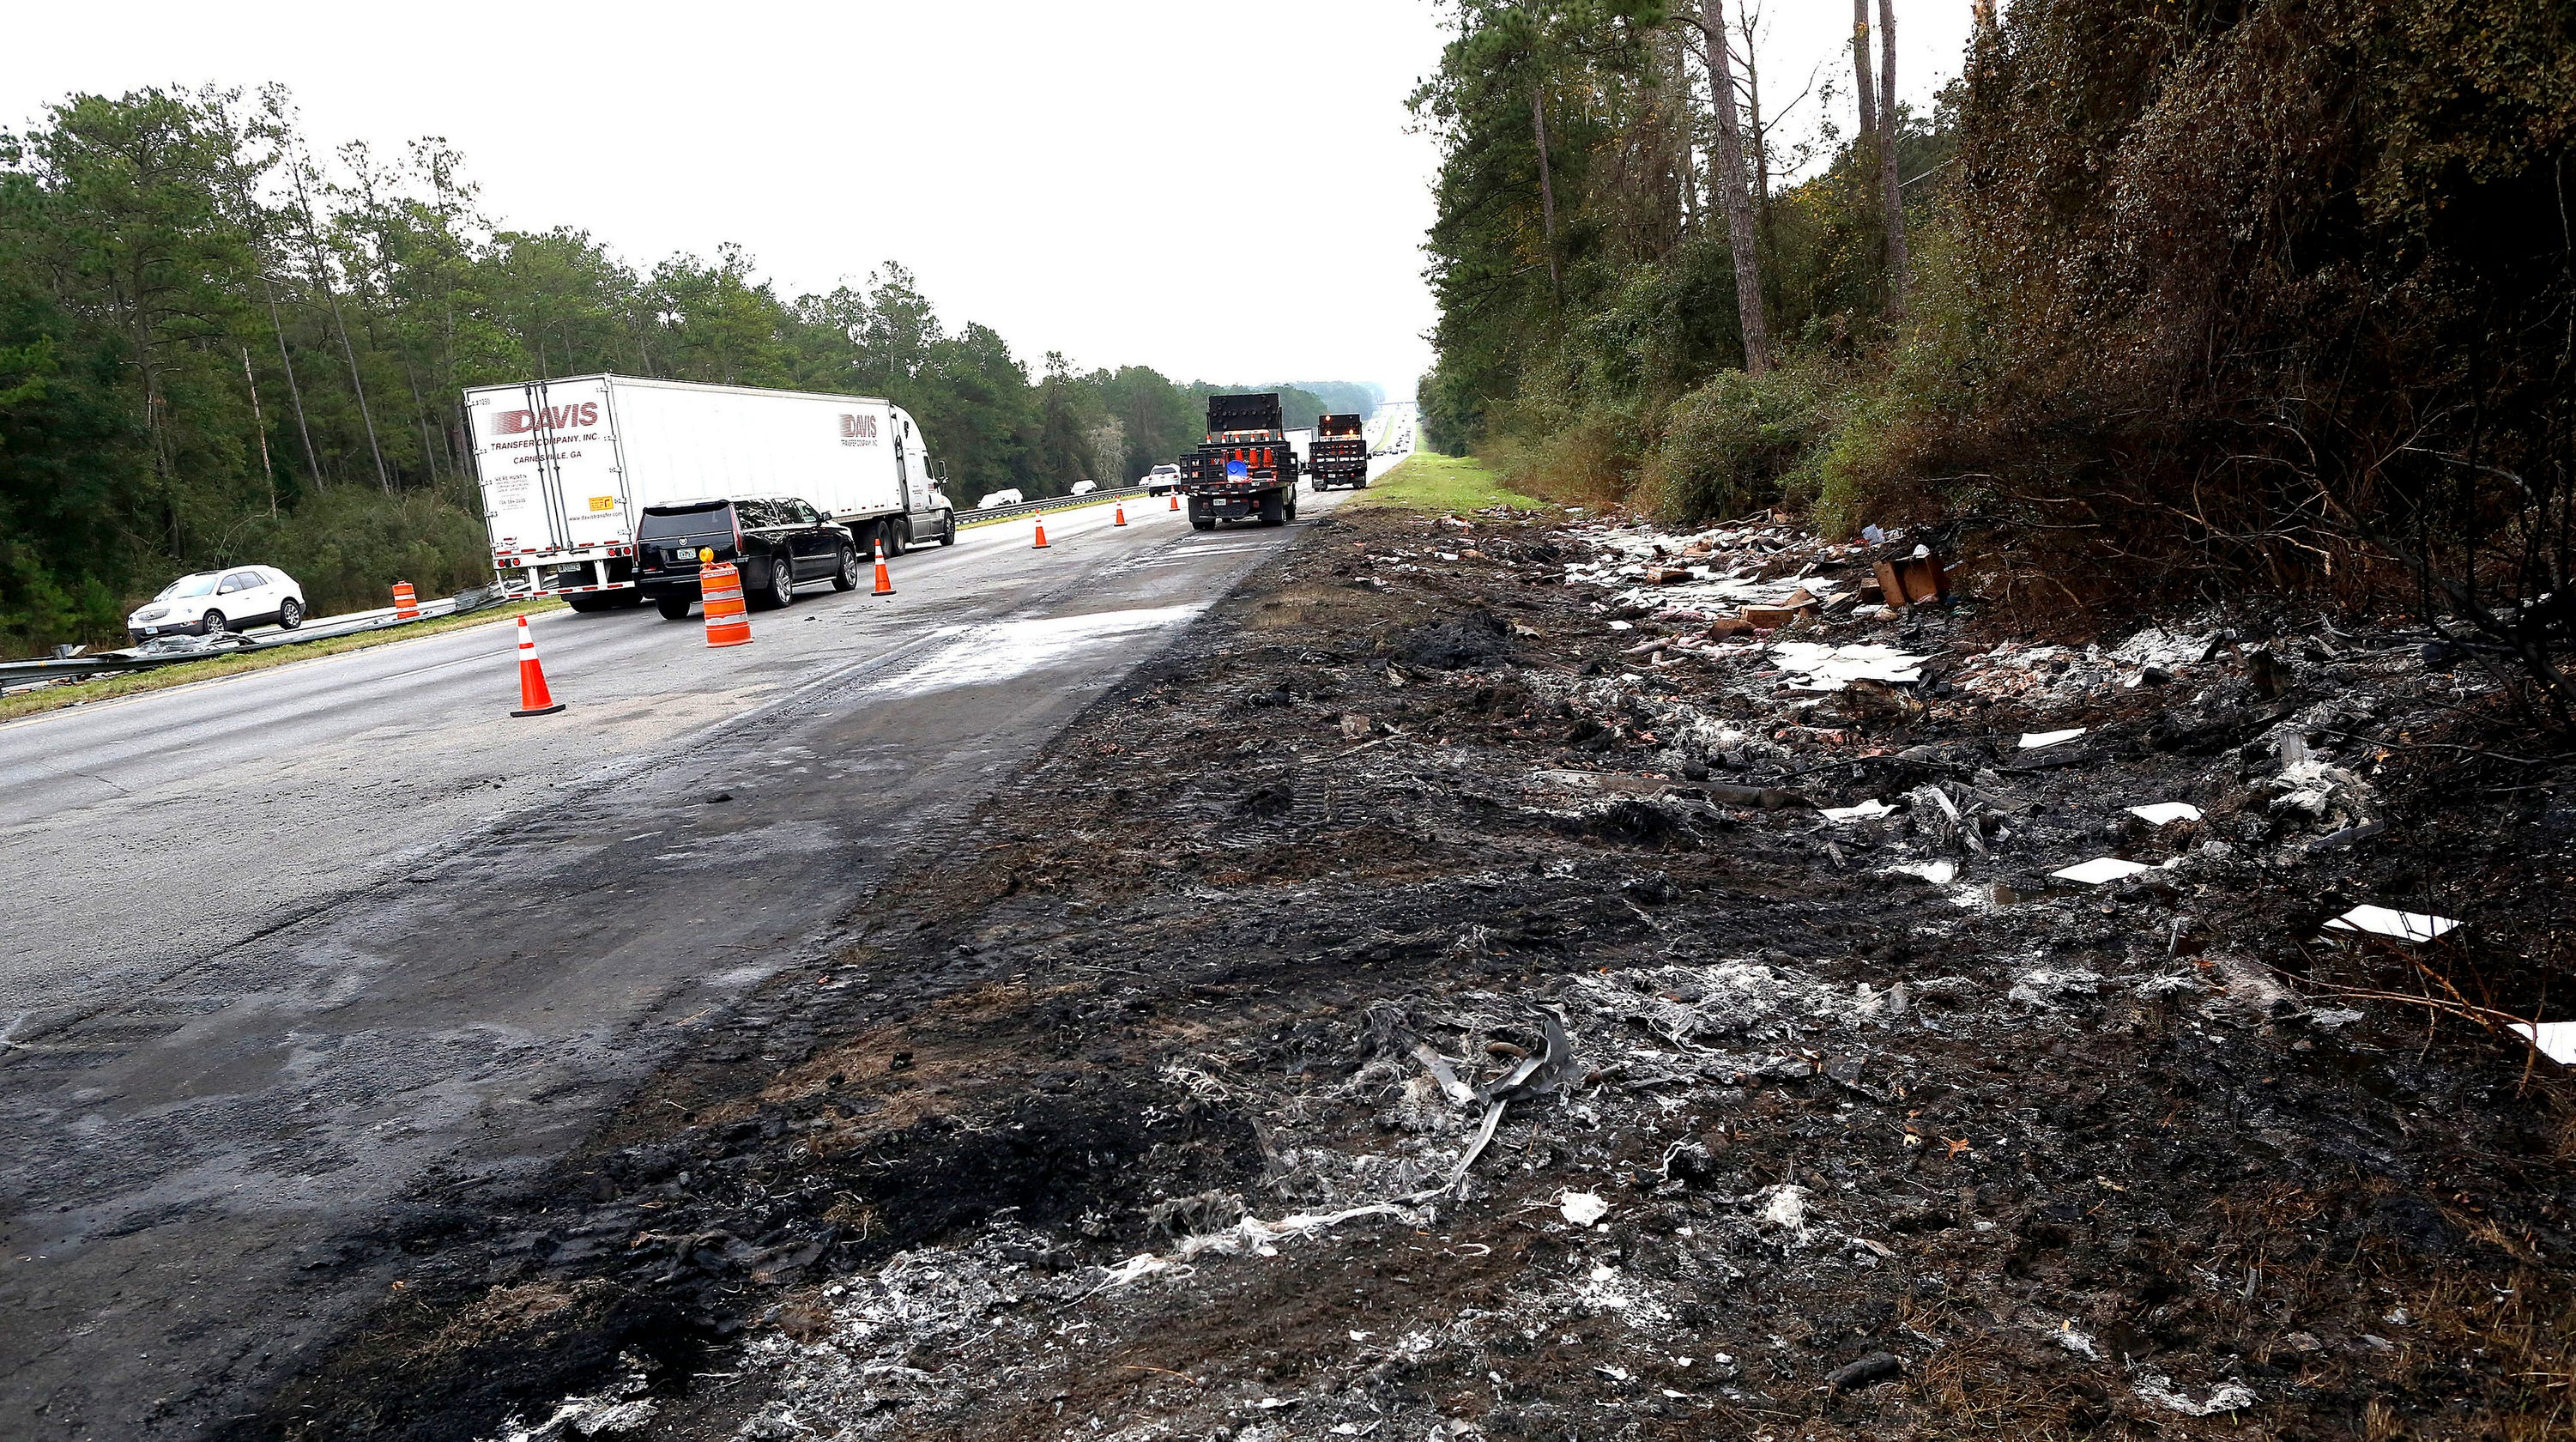 Truck driver in fiery crash had gotten multiple tickets over the years